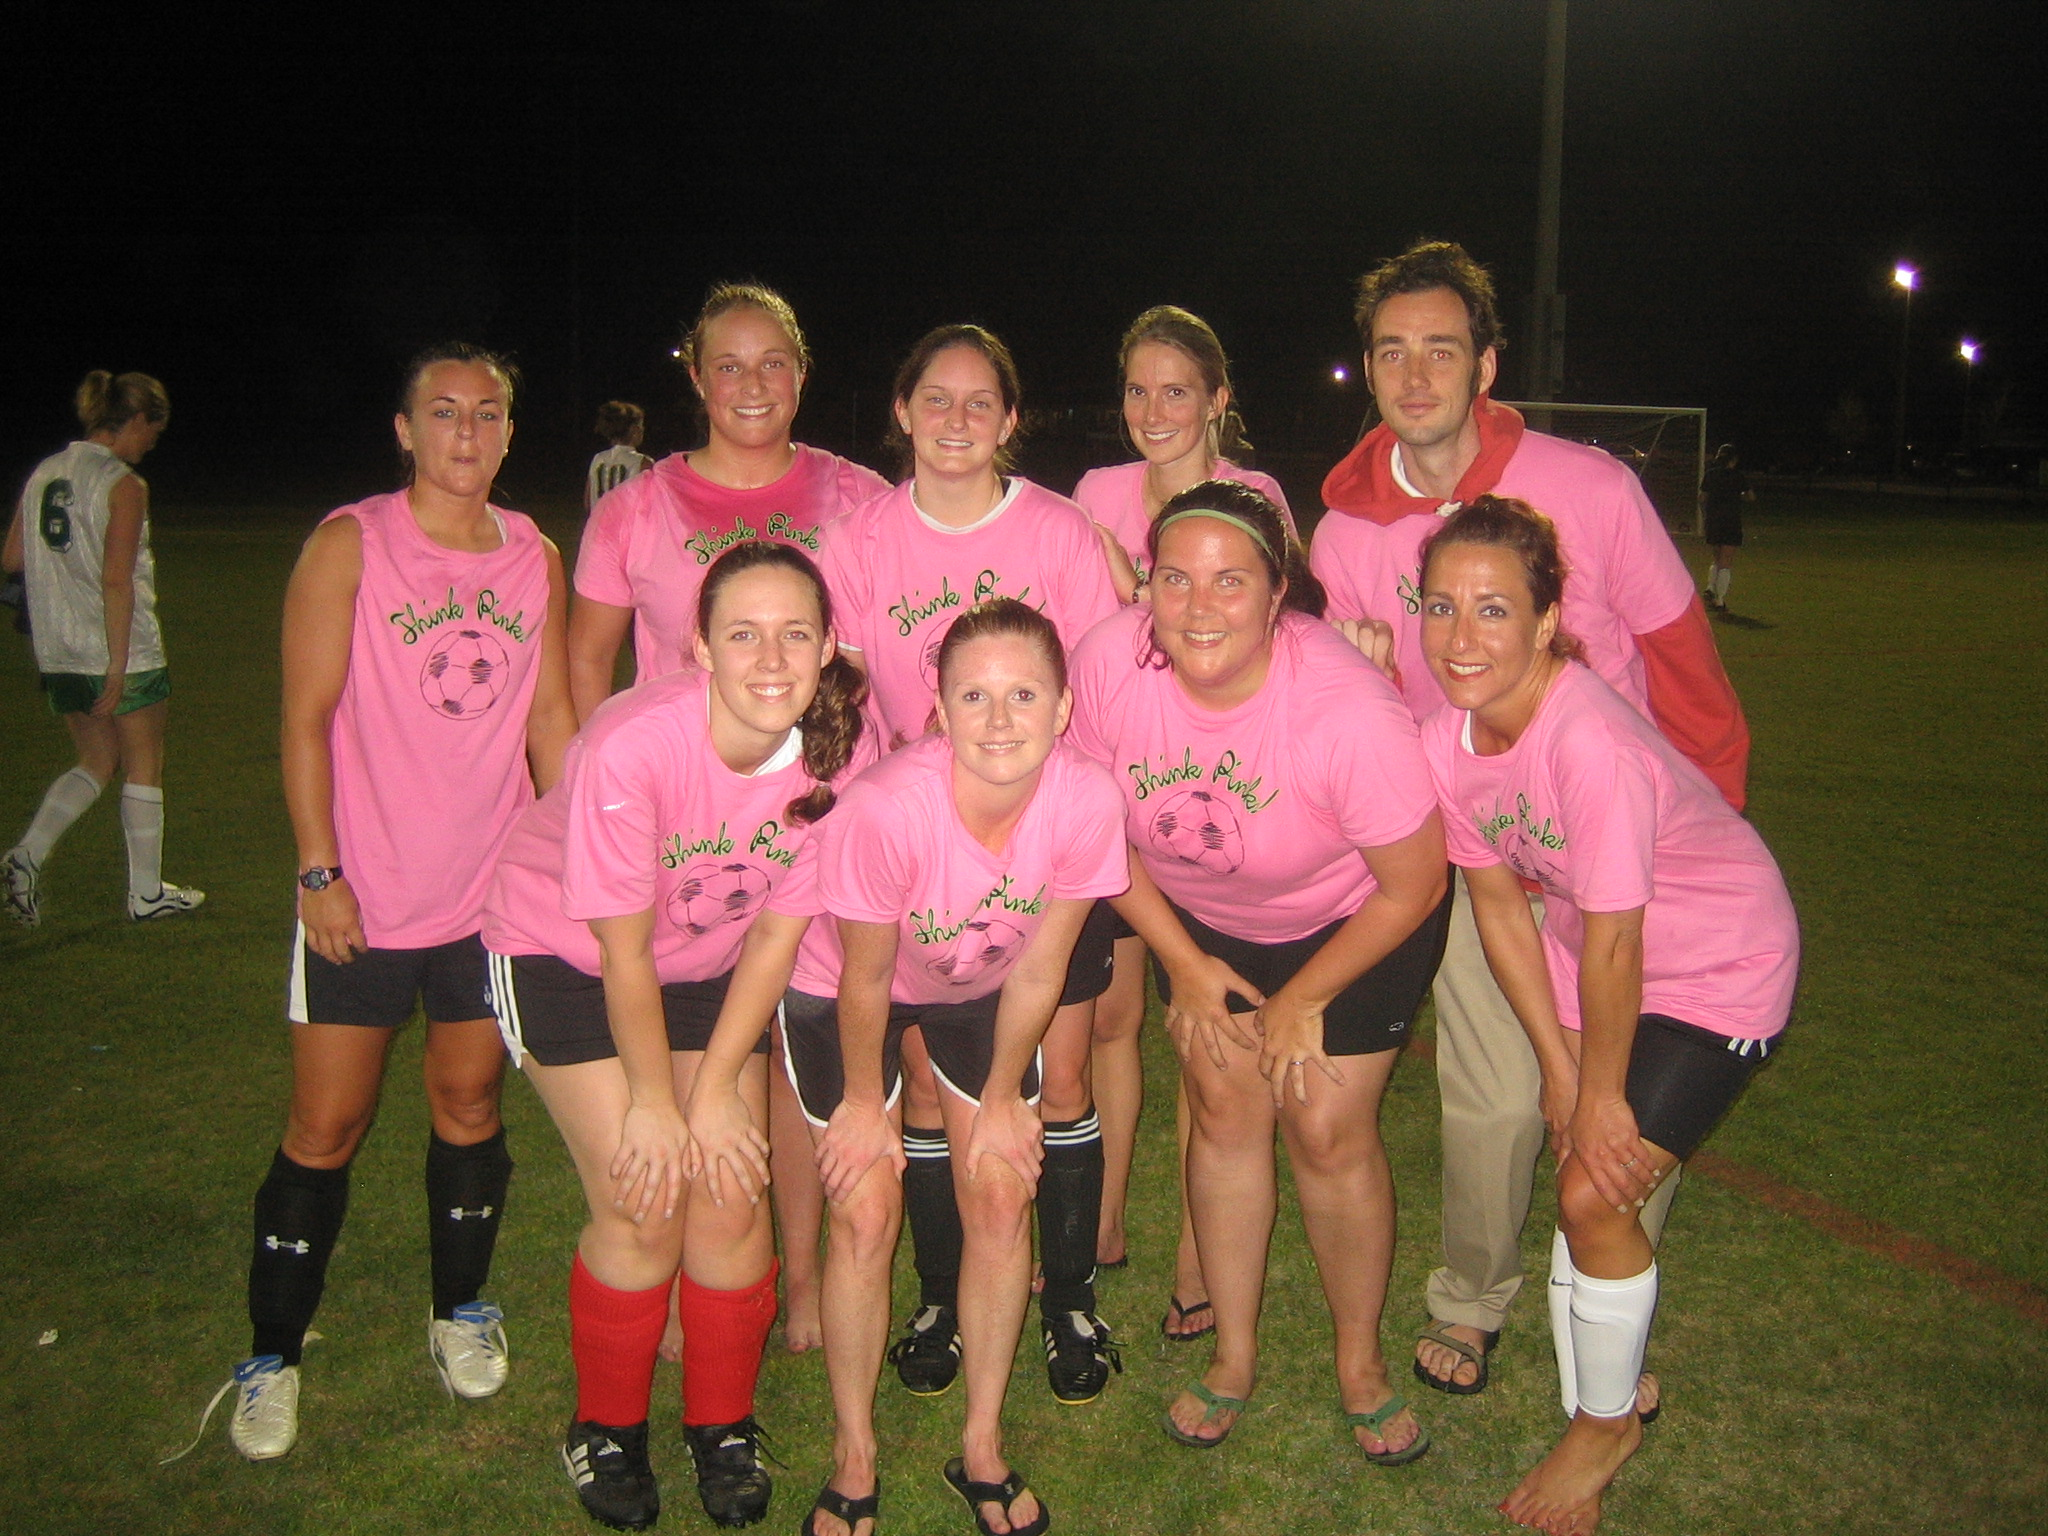 Design your own t-shirt in australia - Our Soccer Team With Our Pink Jerseys T Shirt Photo